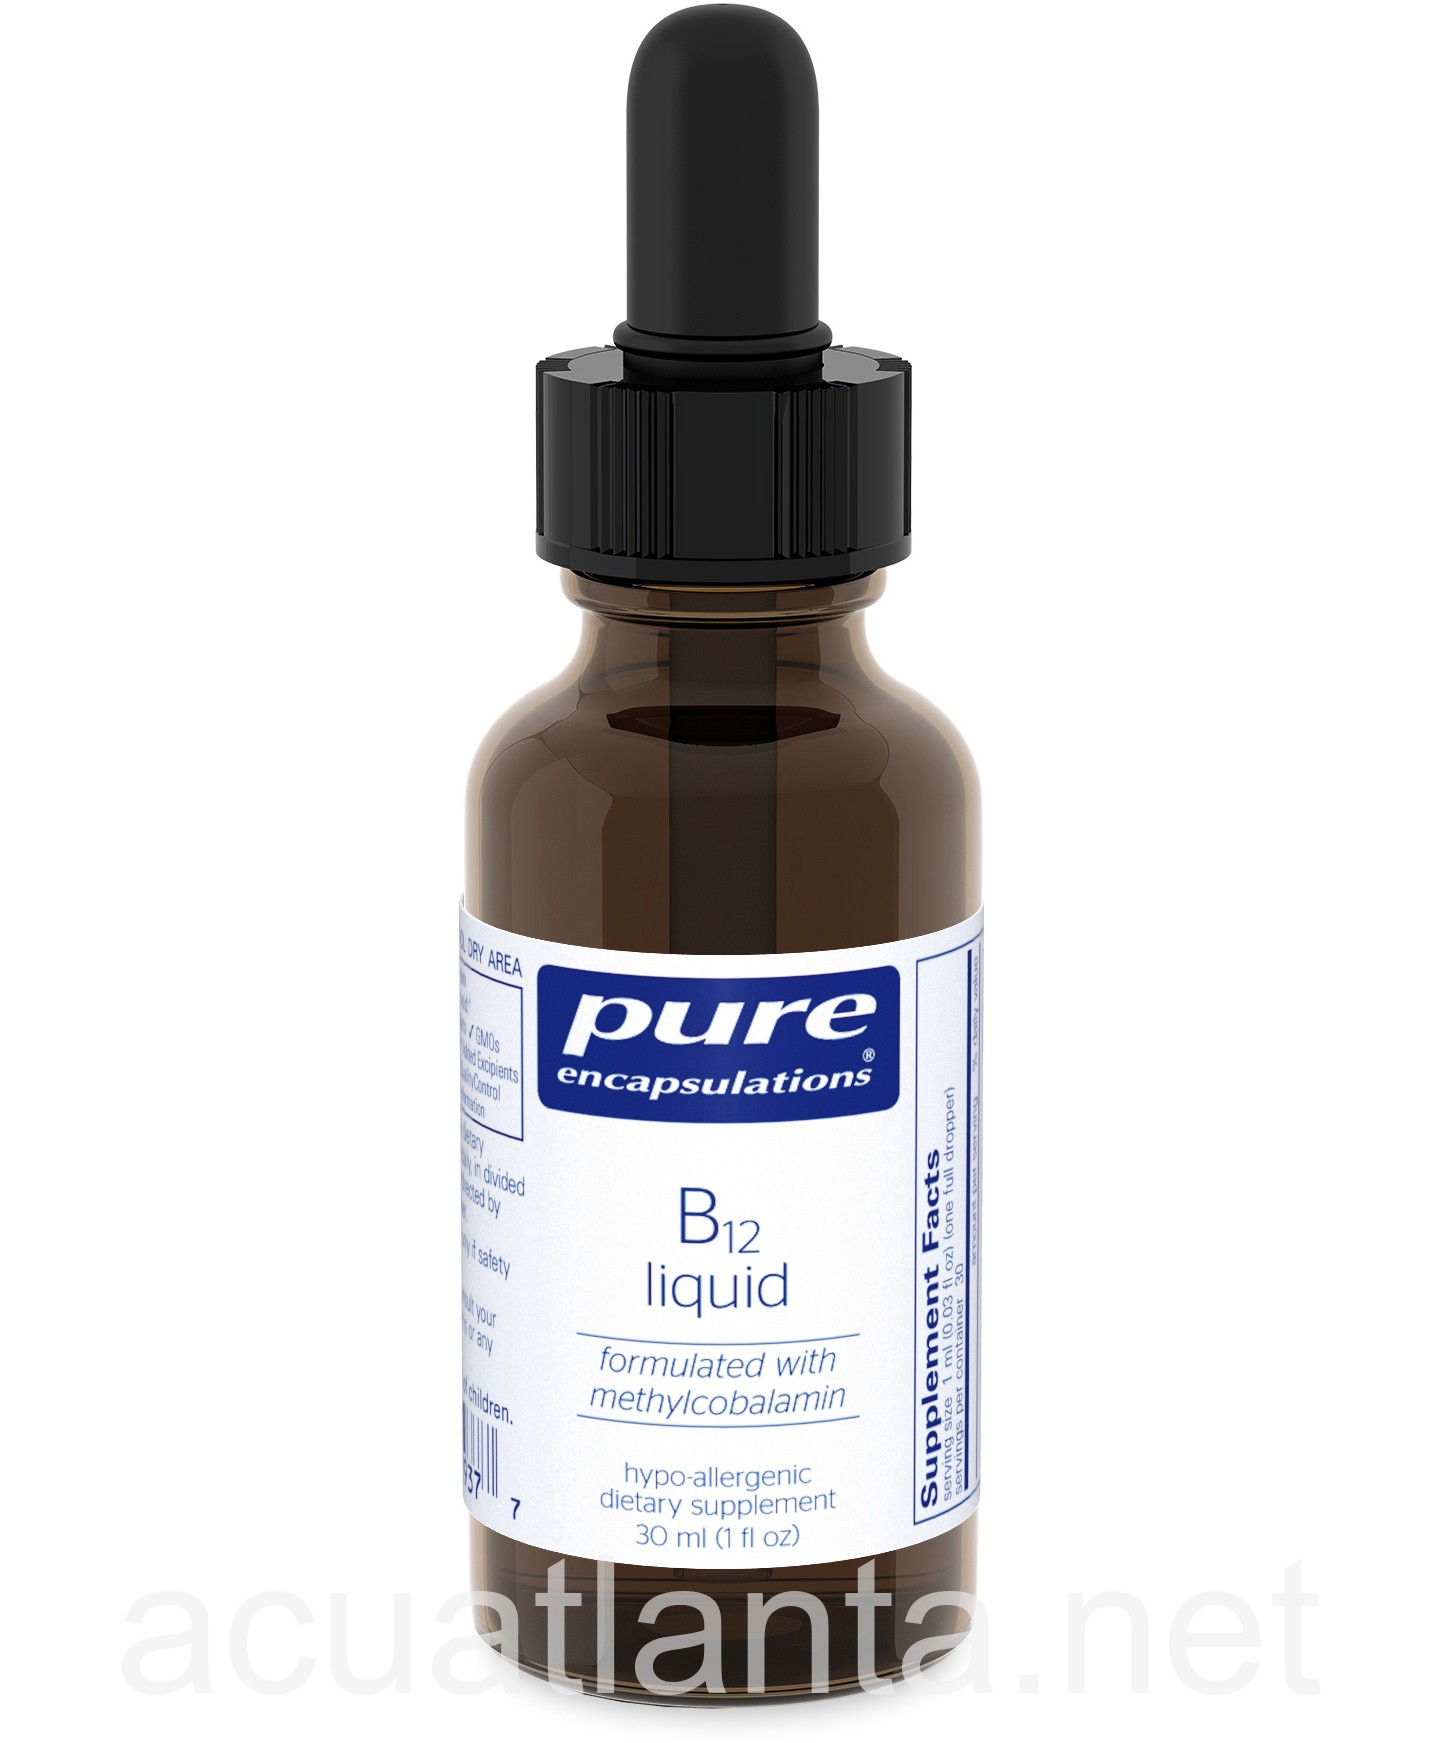 b12 liquid 30 milliliters 1000 micrograms by pure encapsulations on sale in stock fast shipping. Black Bedroom Furniture Sets. Home Design Ideas